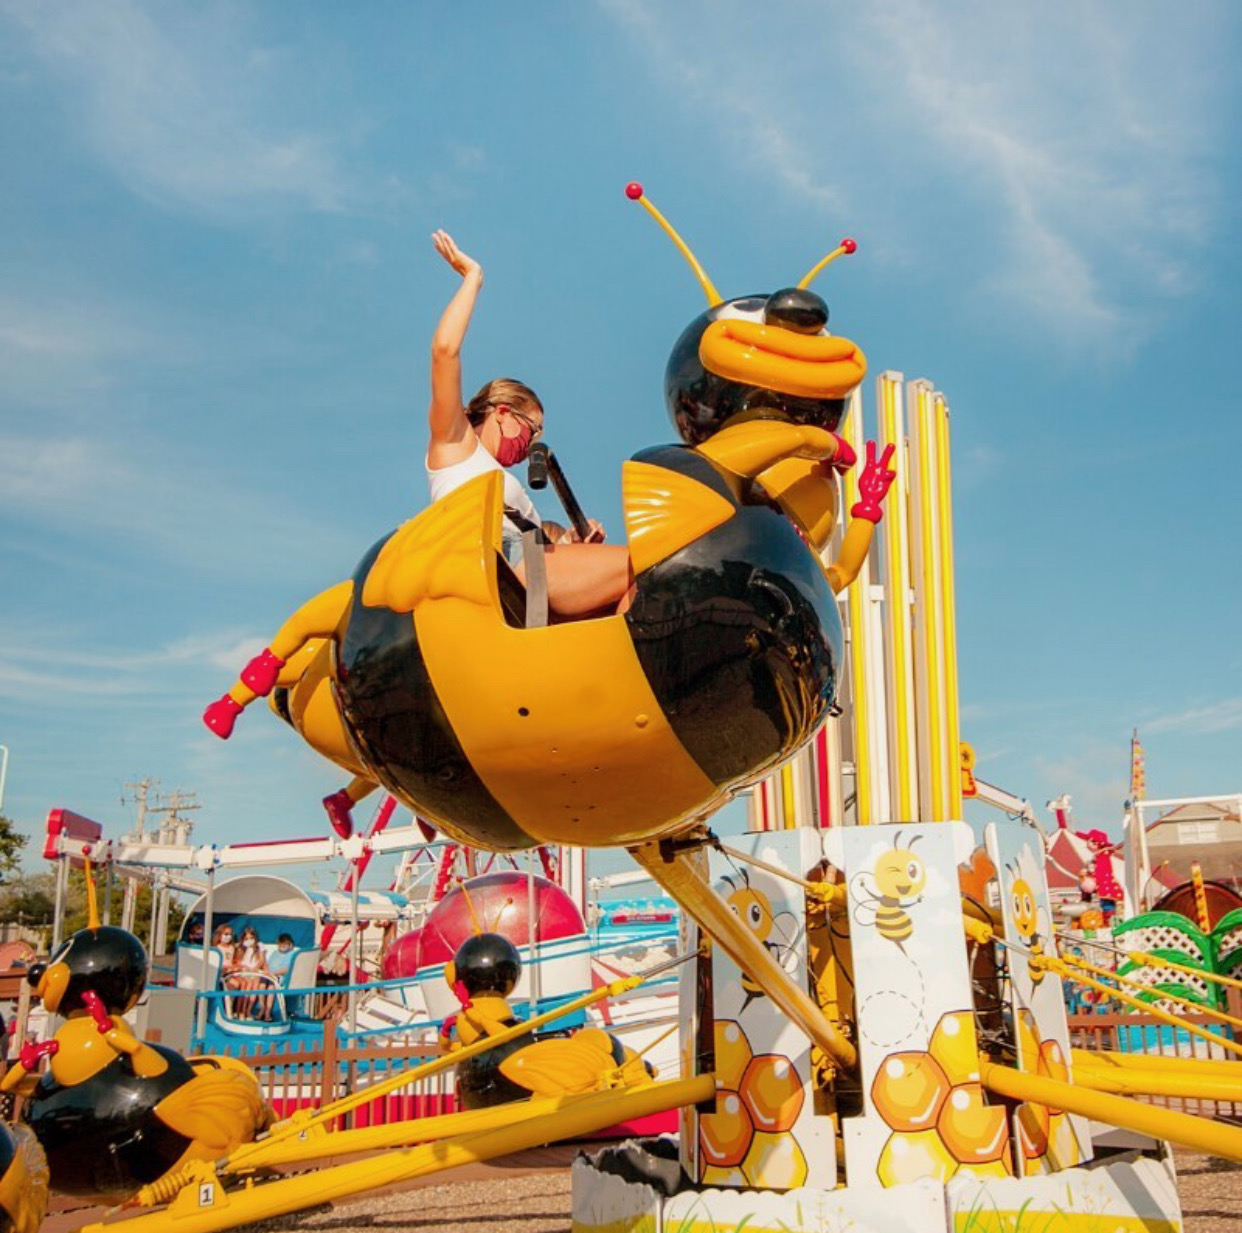 nj mom things to do in LBI with kids long beach island new jersey